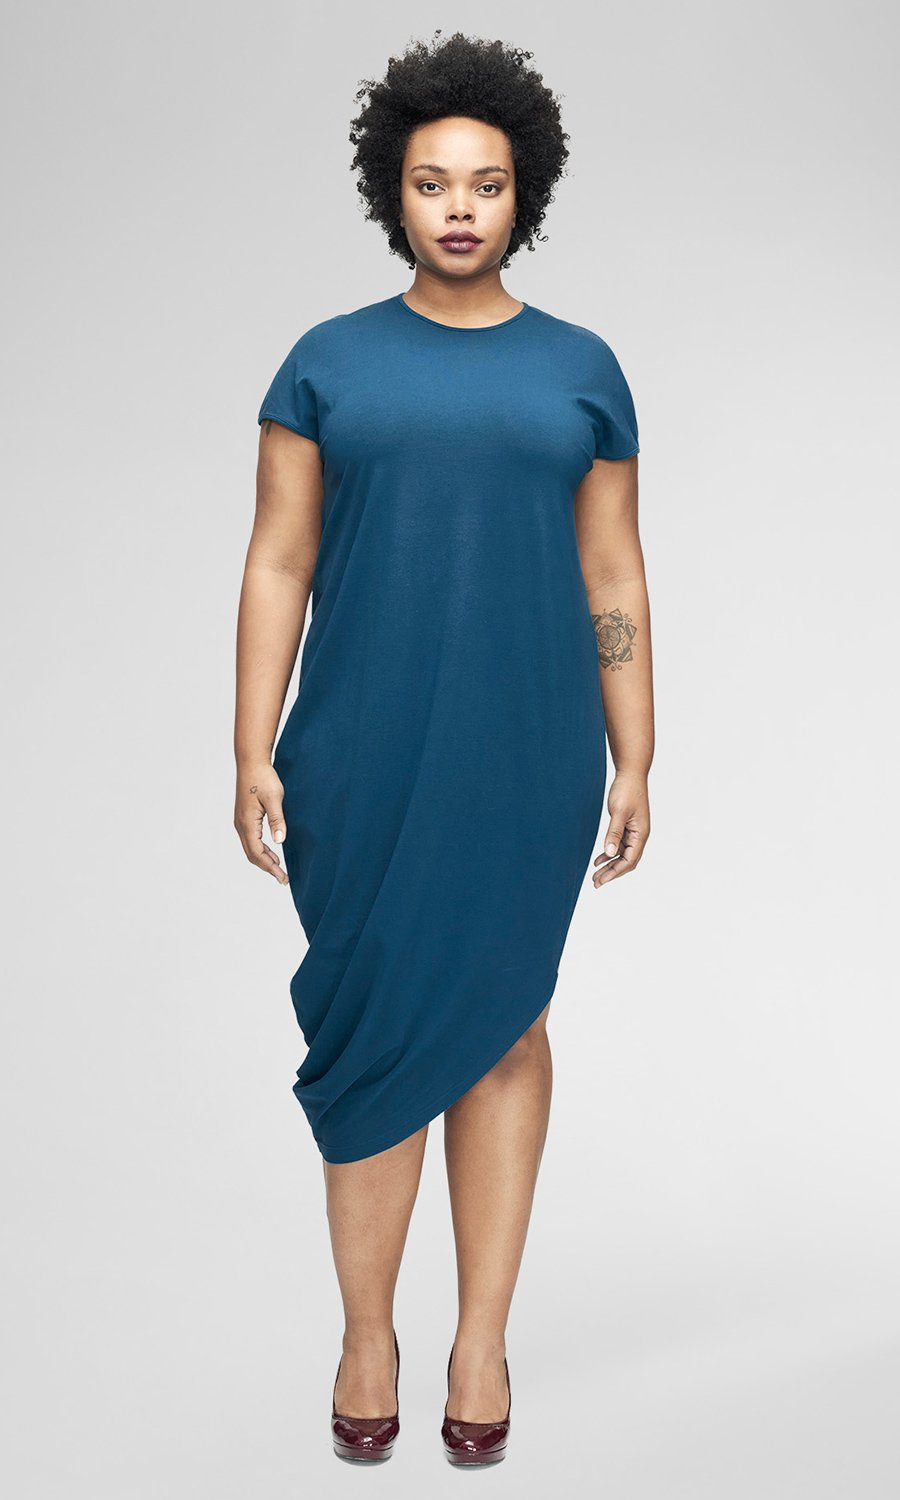 GENEVA DRESS. Available in multiple colors starting at size 10. Universal Standard. $120.